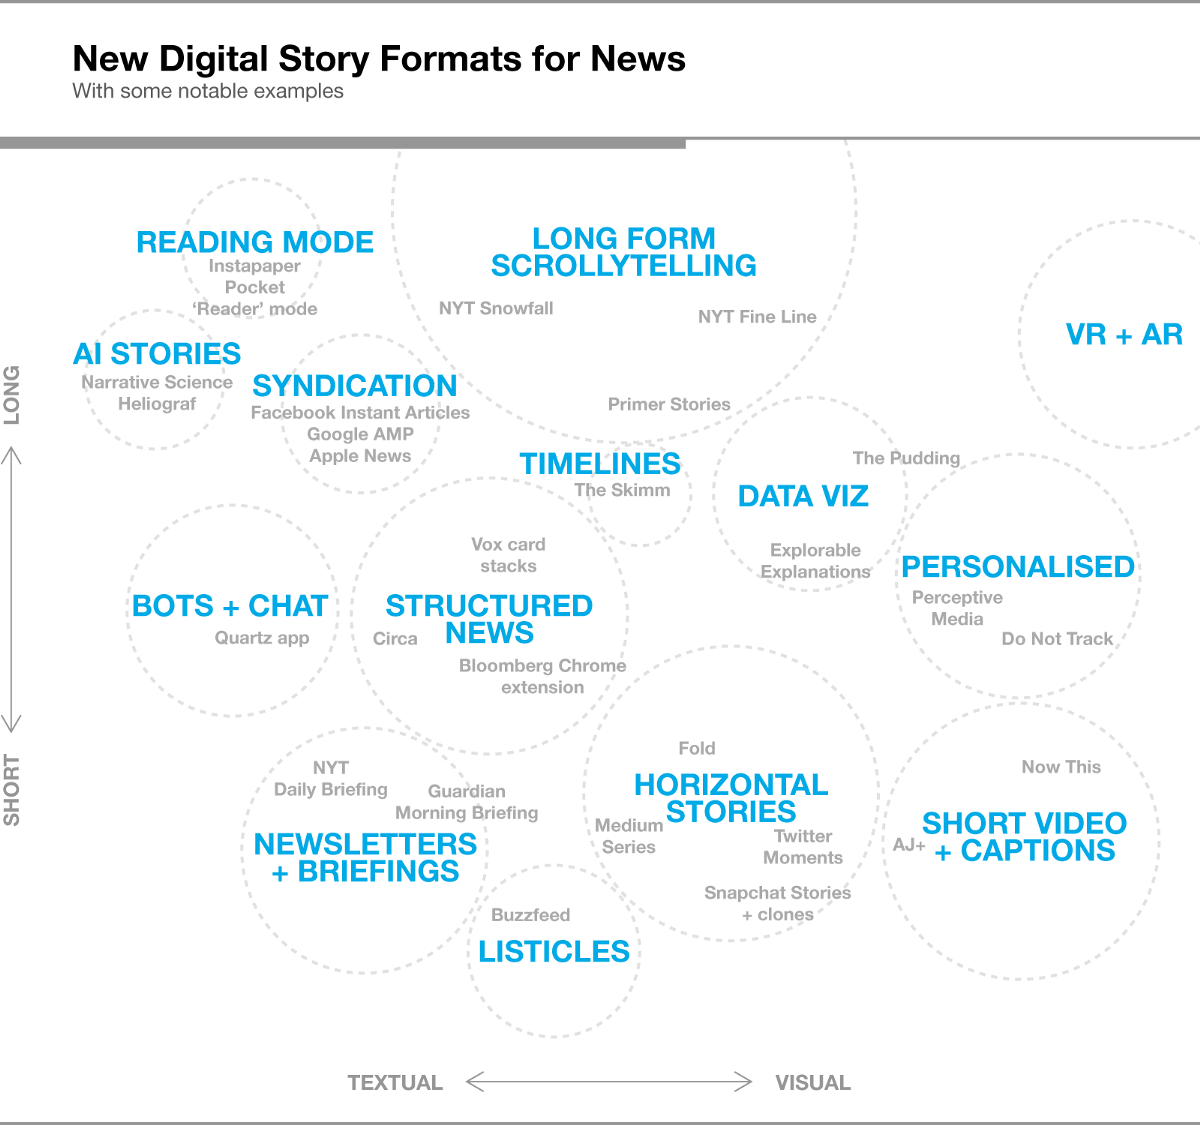 Beyond 800 words: new digital story formats for news